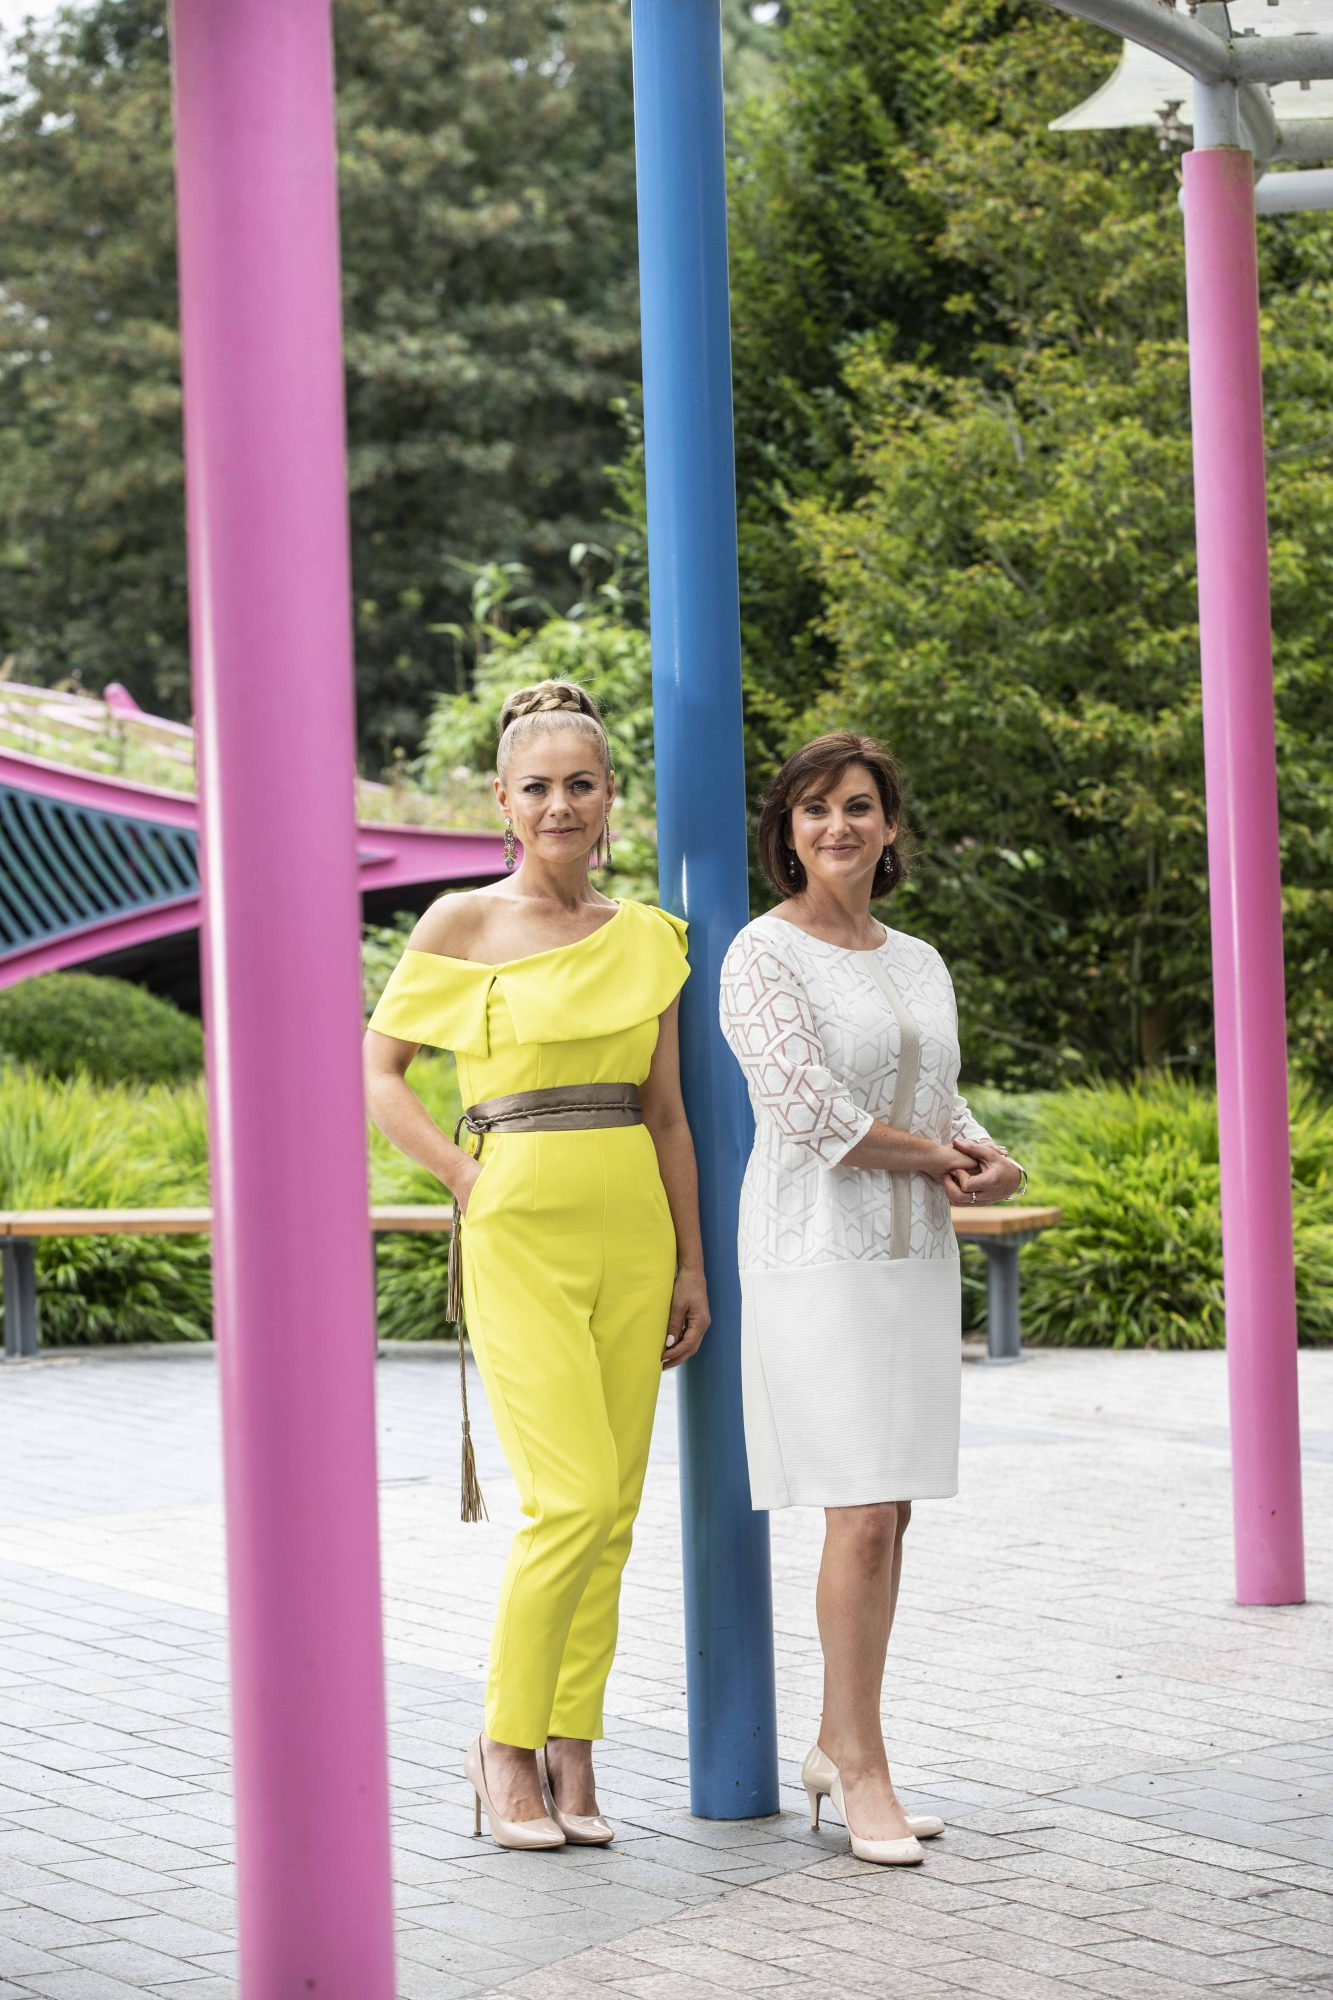 TG4's Autumn Schedule Launch in the stunning Fitzgerald Park in Cork.  Picture Clare Keogh